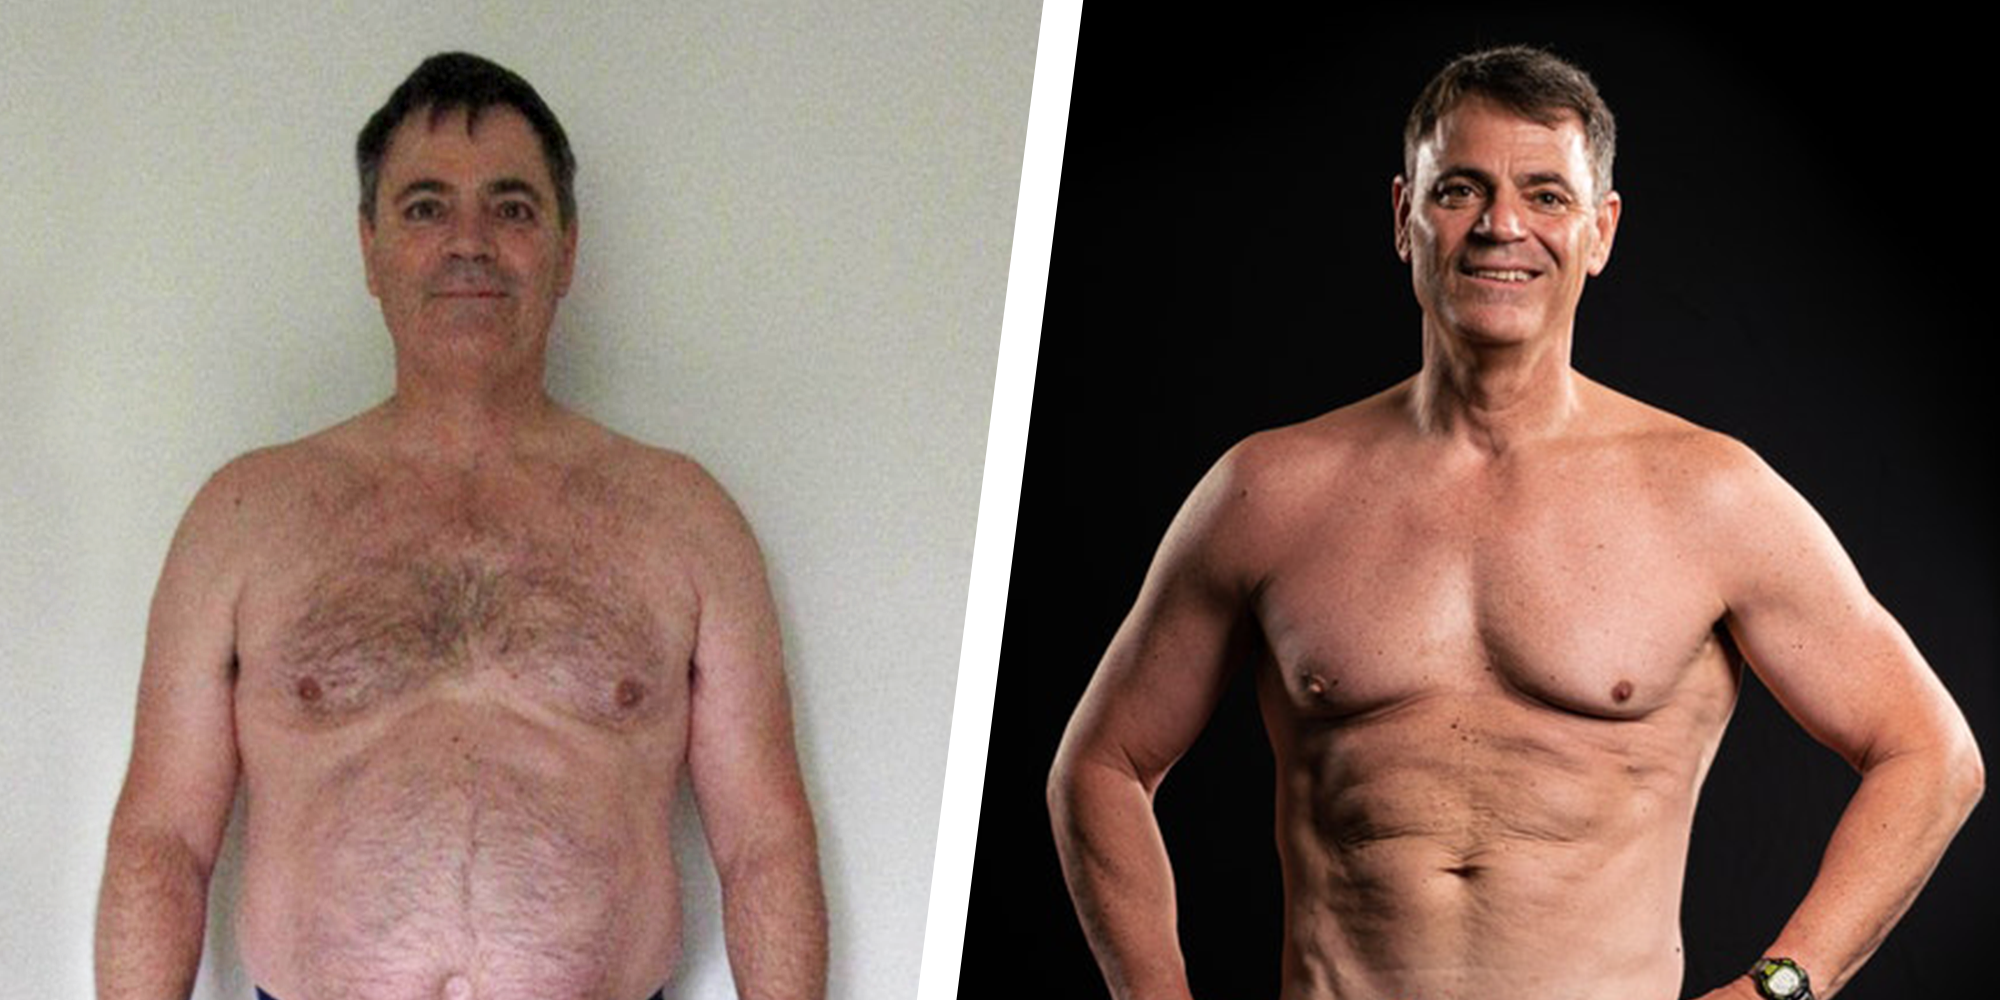 These Healthy Diet Changes Helped This Guy Lose 50 Pounds and Get Ripped